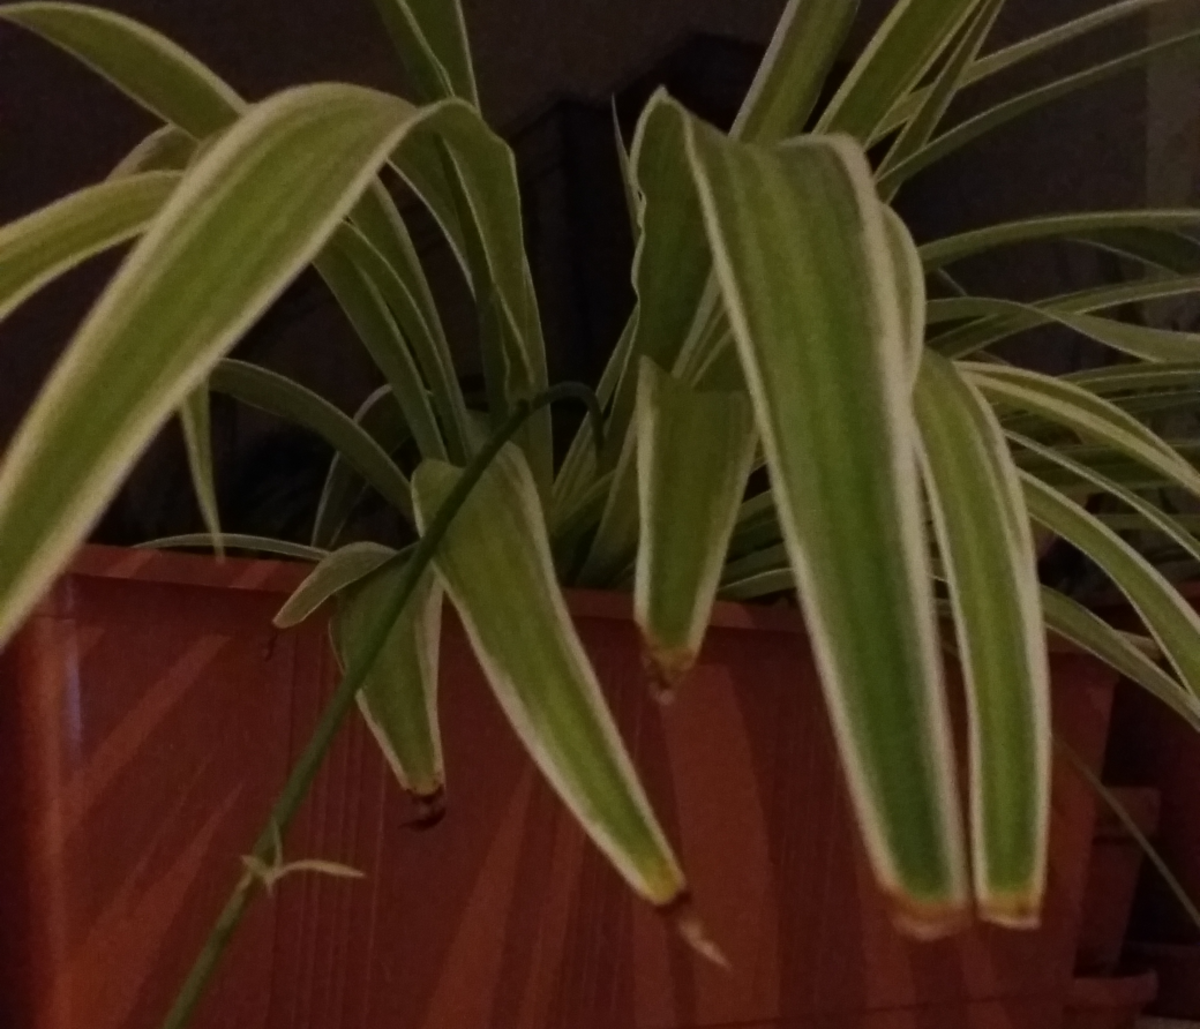 Brown Tips on Spider Plants - Causes and Cures